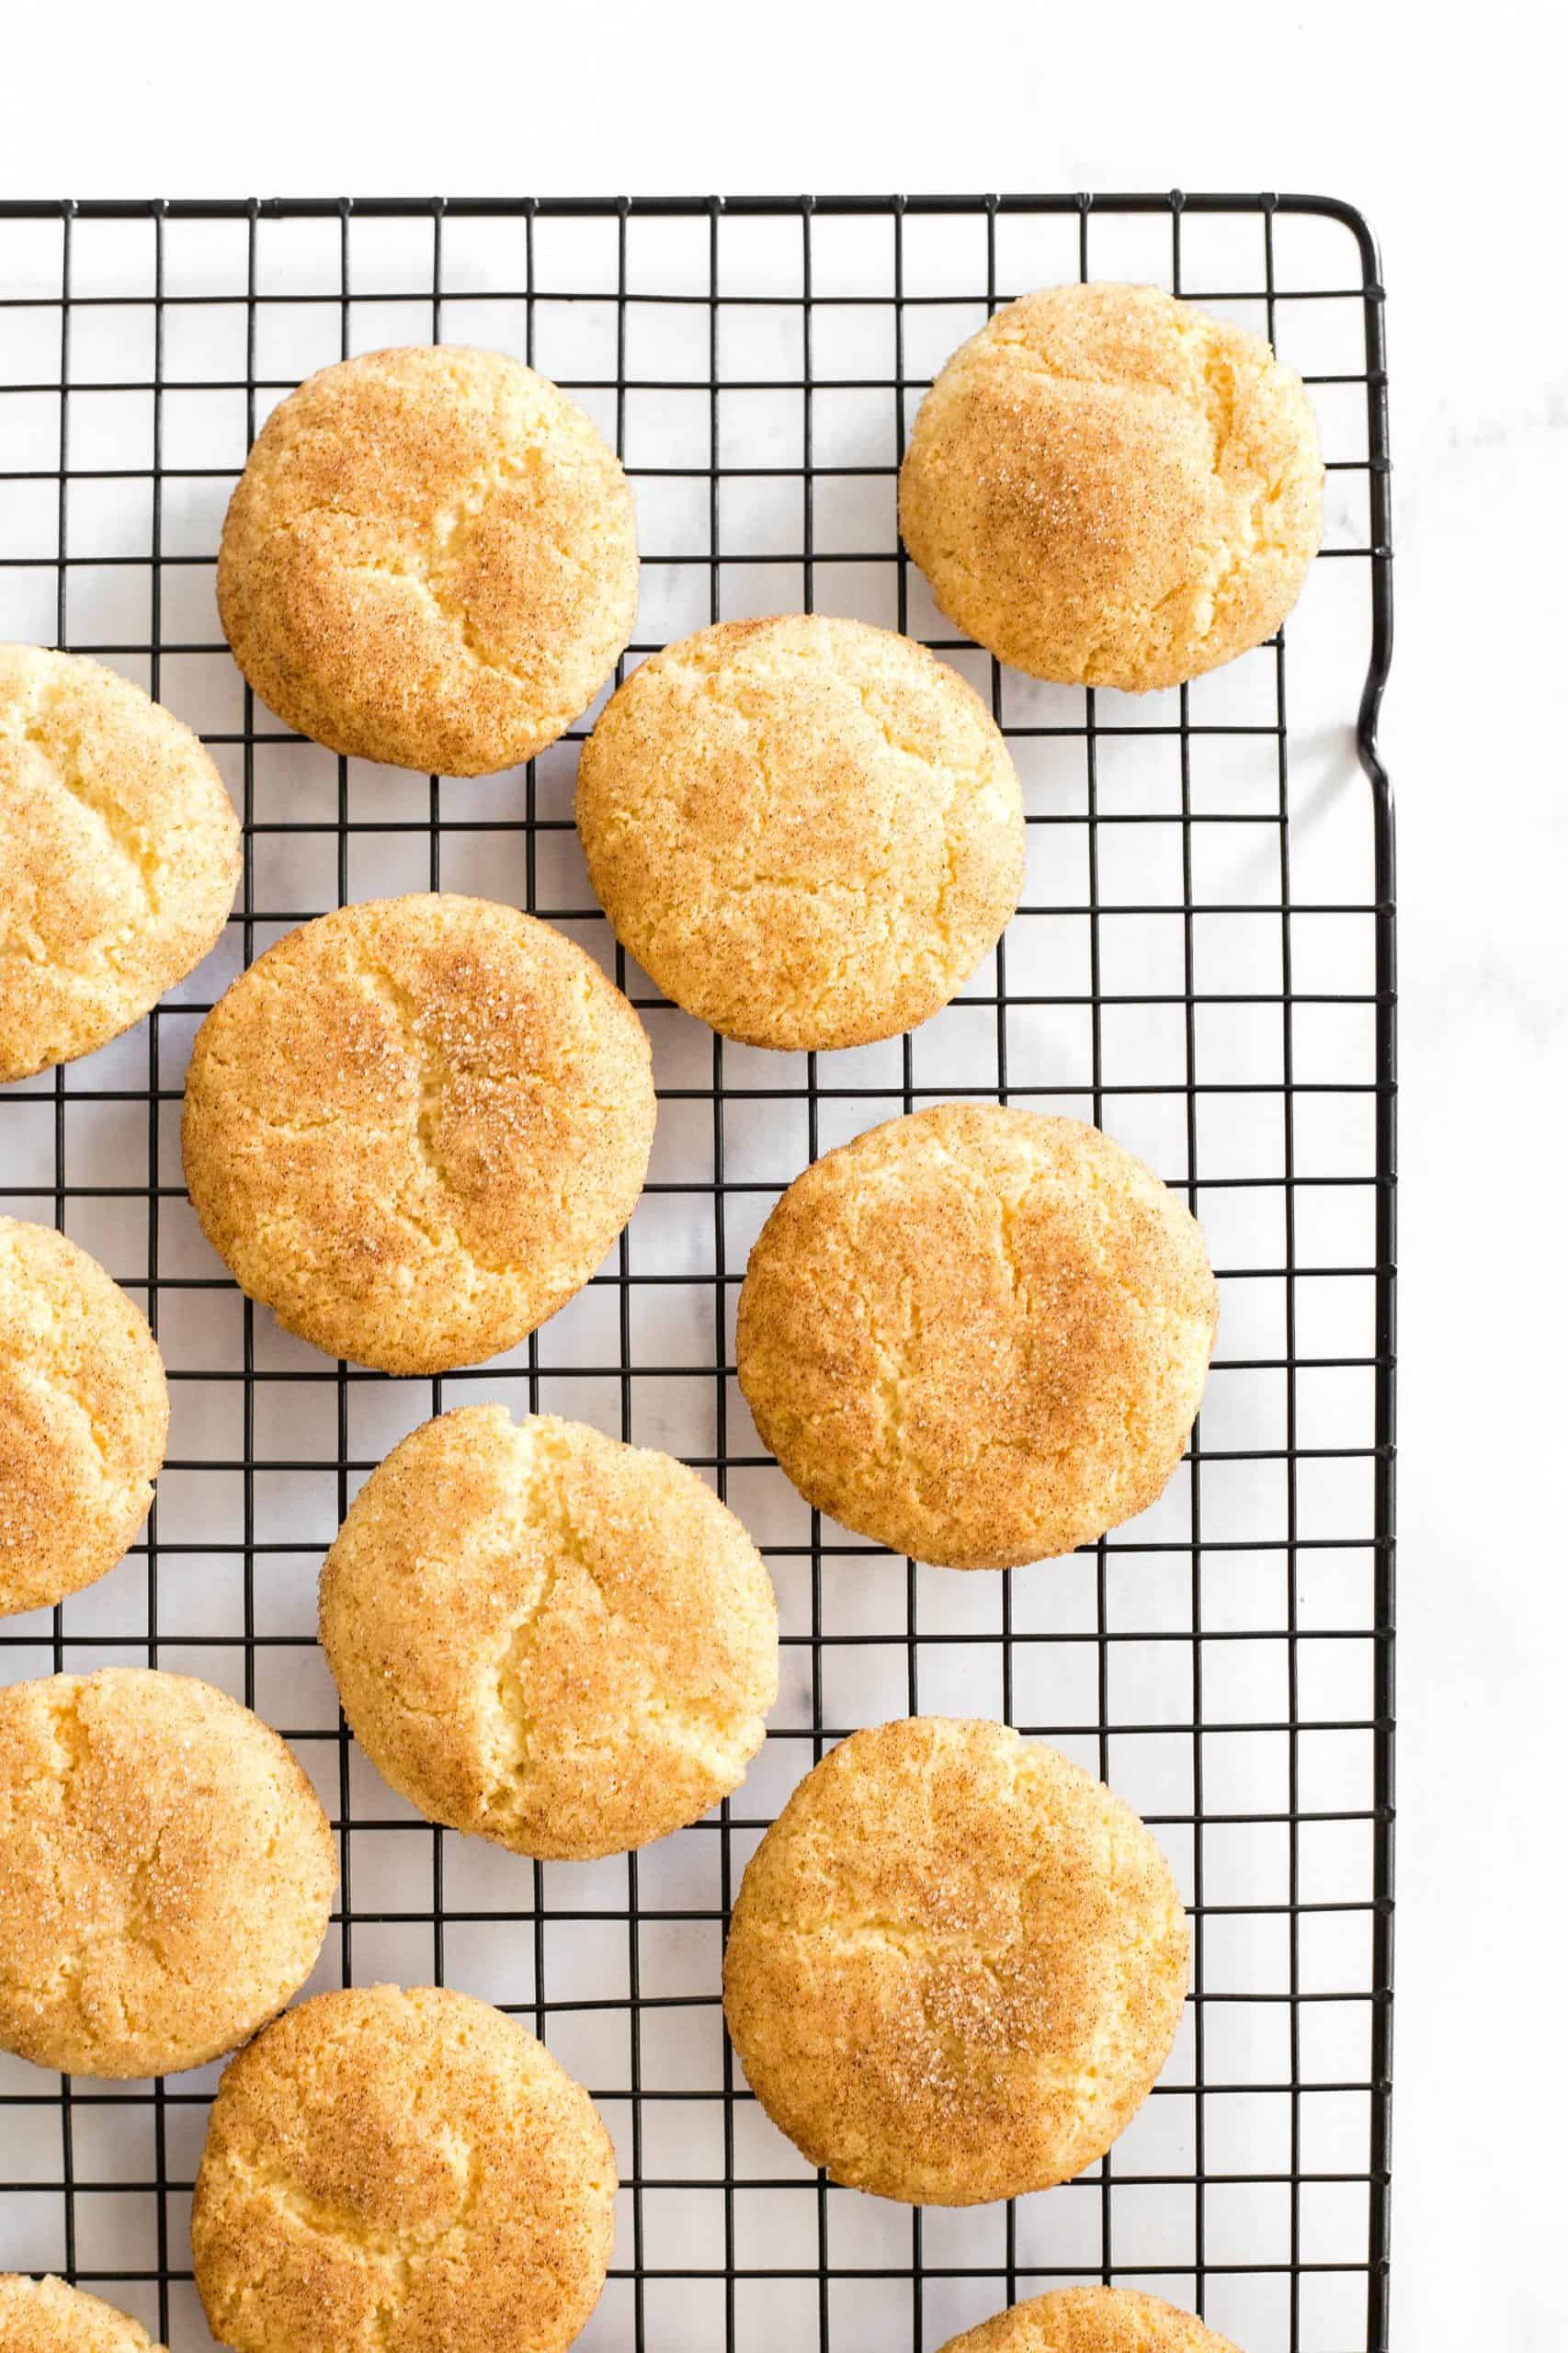 Snickerdoodles cooling on a wire rack.